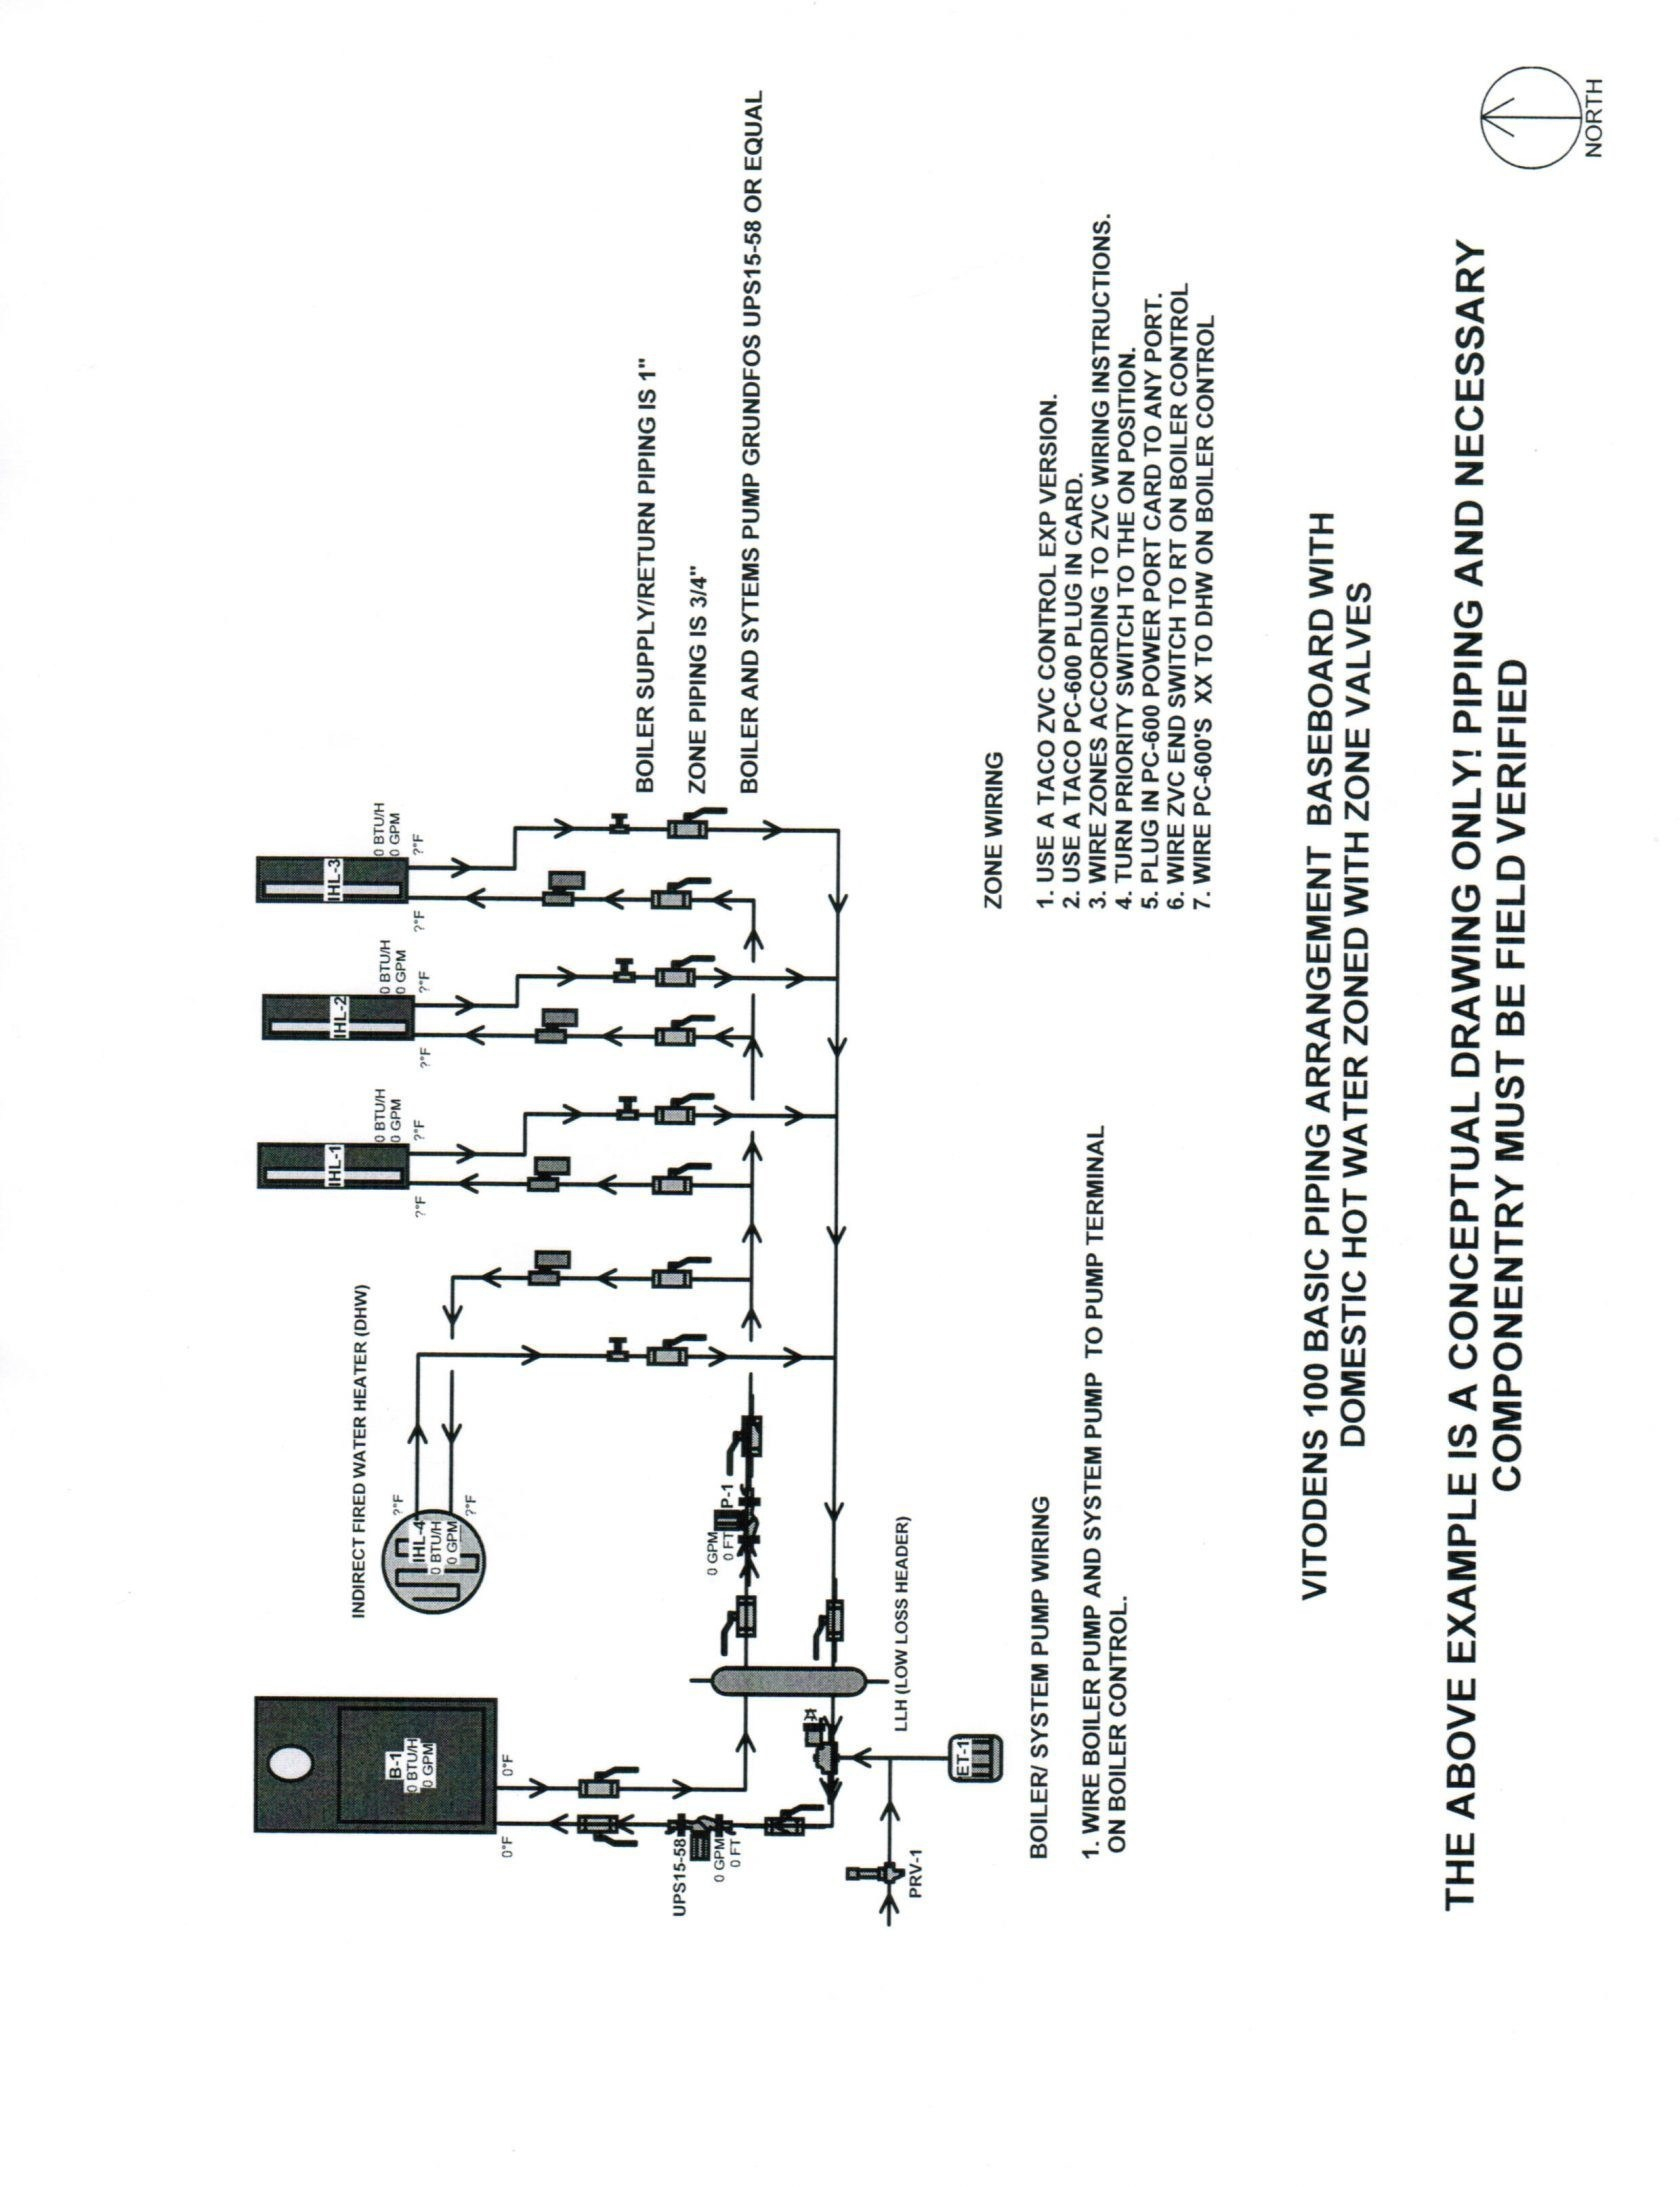 Lovett Bilge Pump Wiring Diagram - Auto Electrical Wiring Diagram - Bilge Pump Wiring Diagram